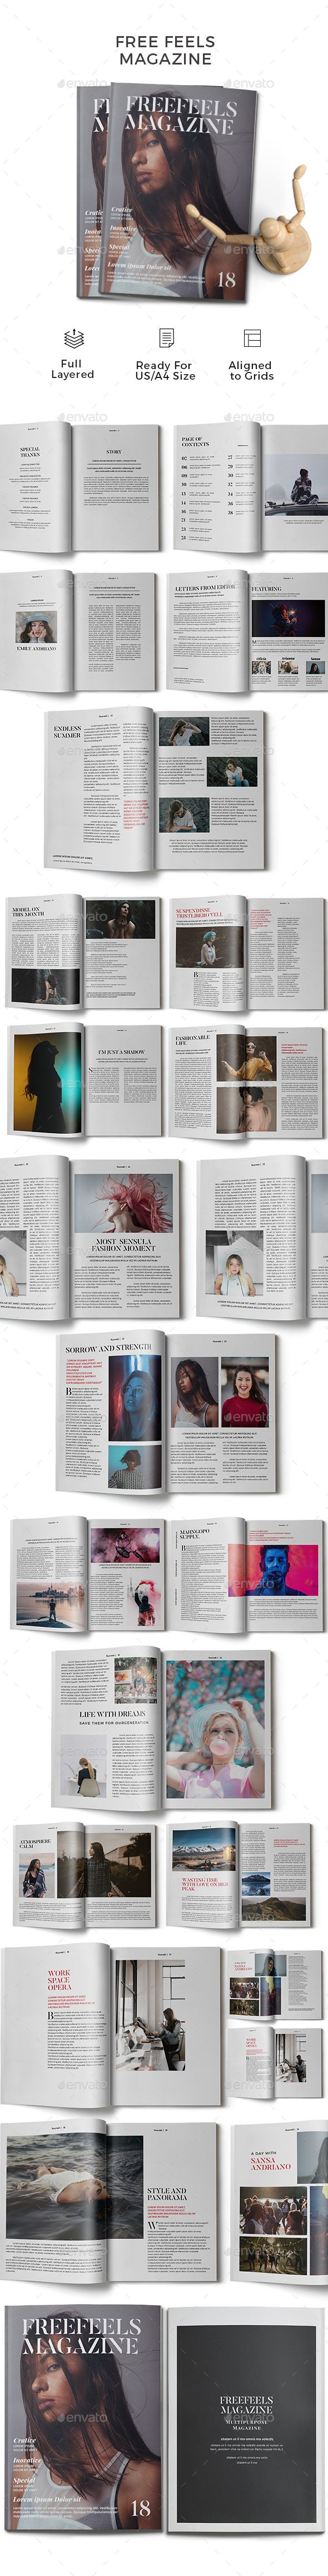 Free Feels Magazine Template Indesign Indd A4 Us Letter Size